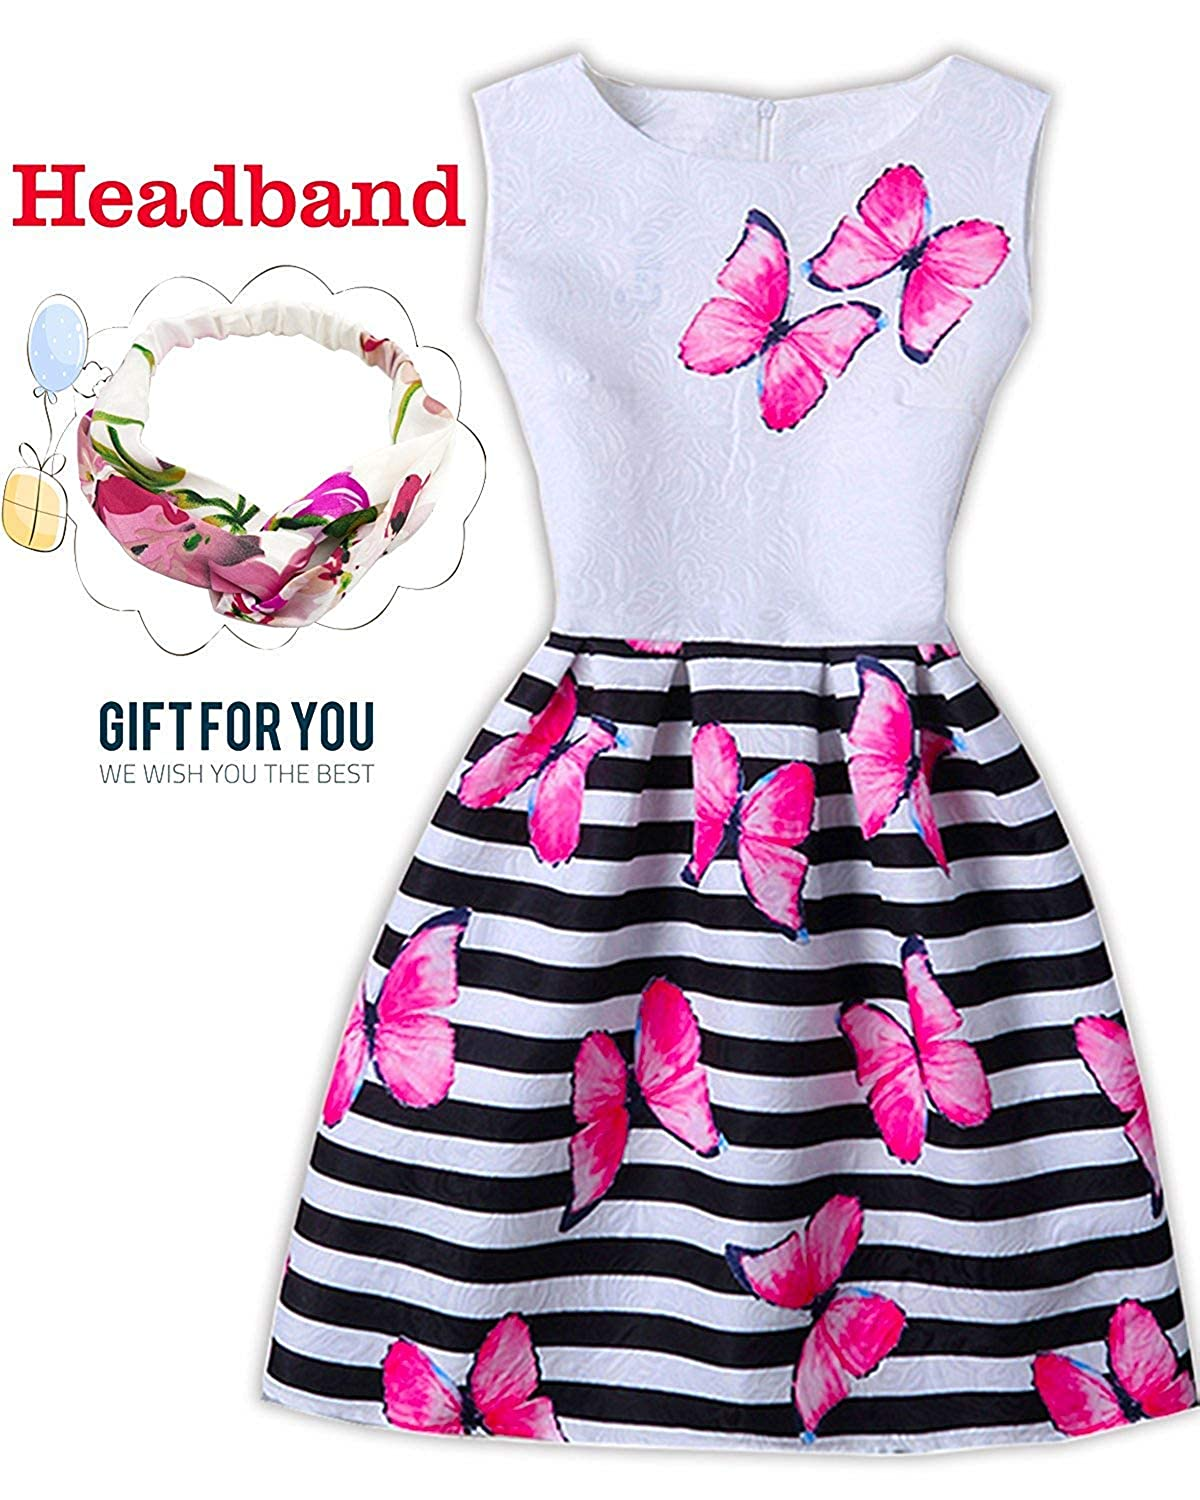 Amazon.com  Easter Dress for Girls Sleeveless Butterfly Print Casual A-line Princess  Dresses with Headband for Easter Party  Clothing 94b603c9b2fb